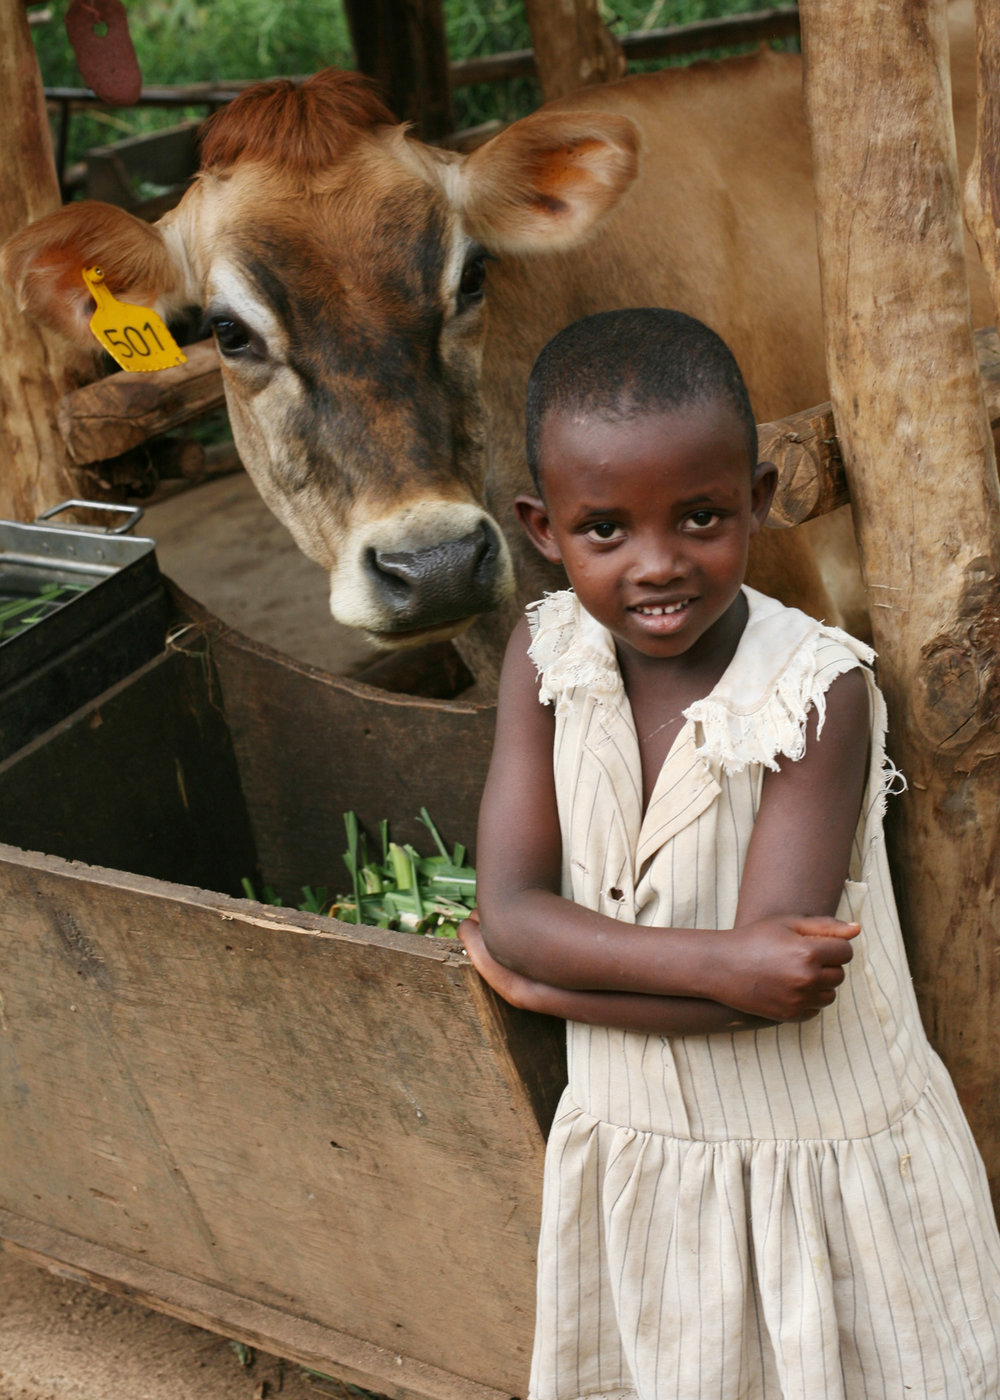 10% of profitgoes to heifer intl. - Tap here for more info!